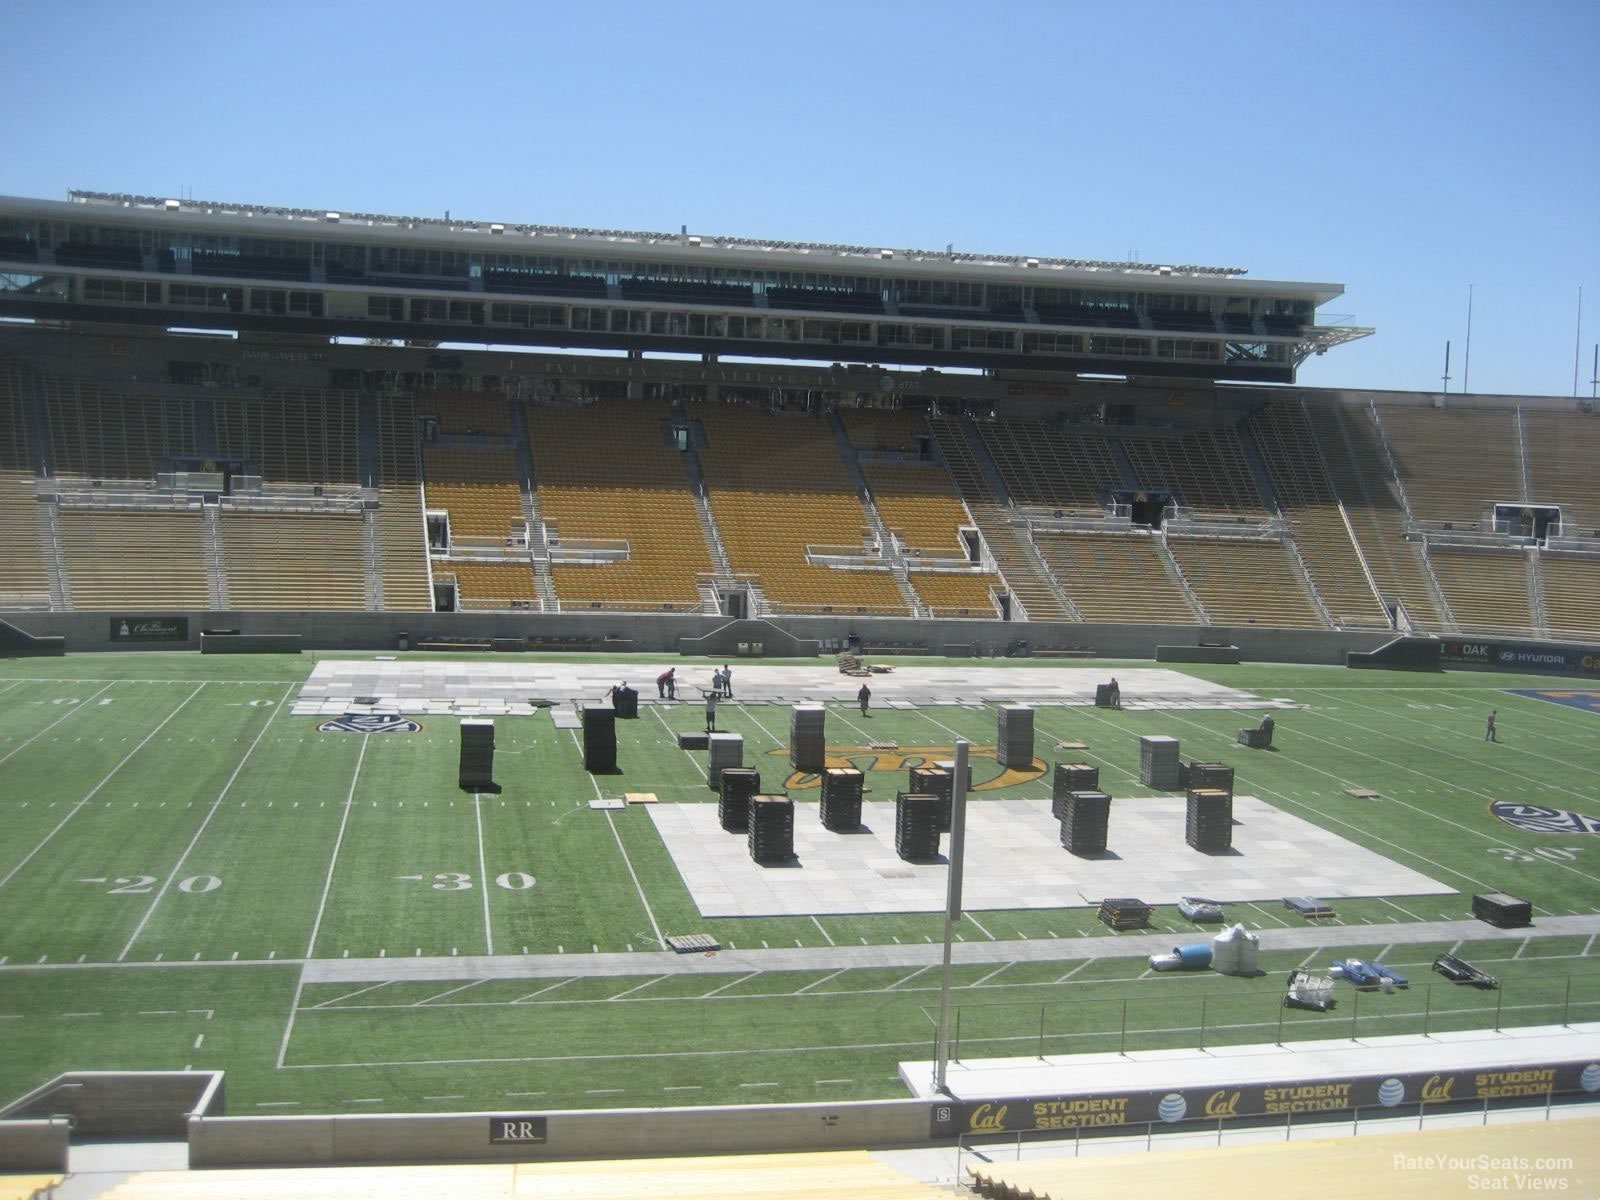 Staying out of the sun at Cal Memorial Stadium